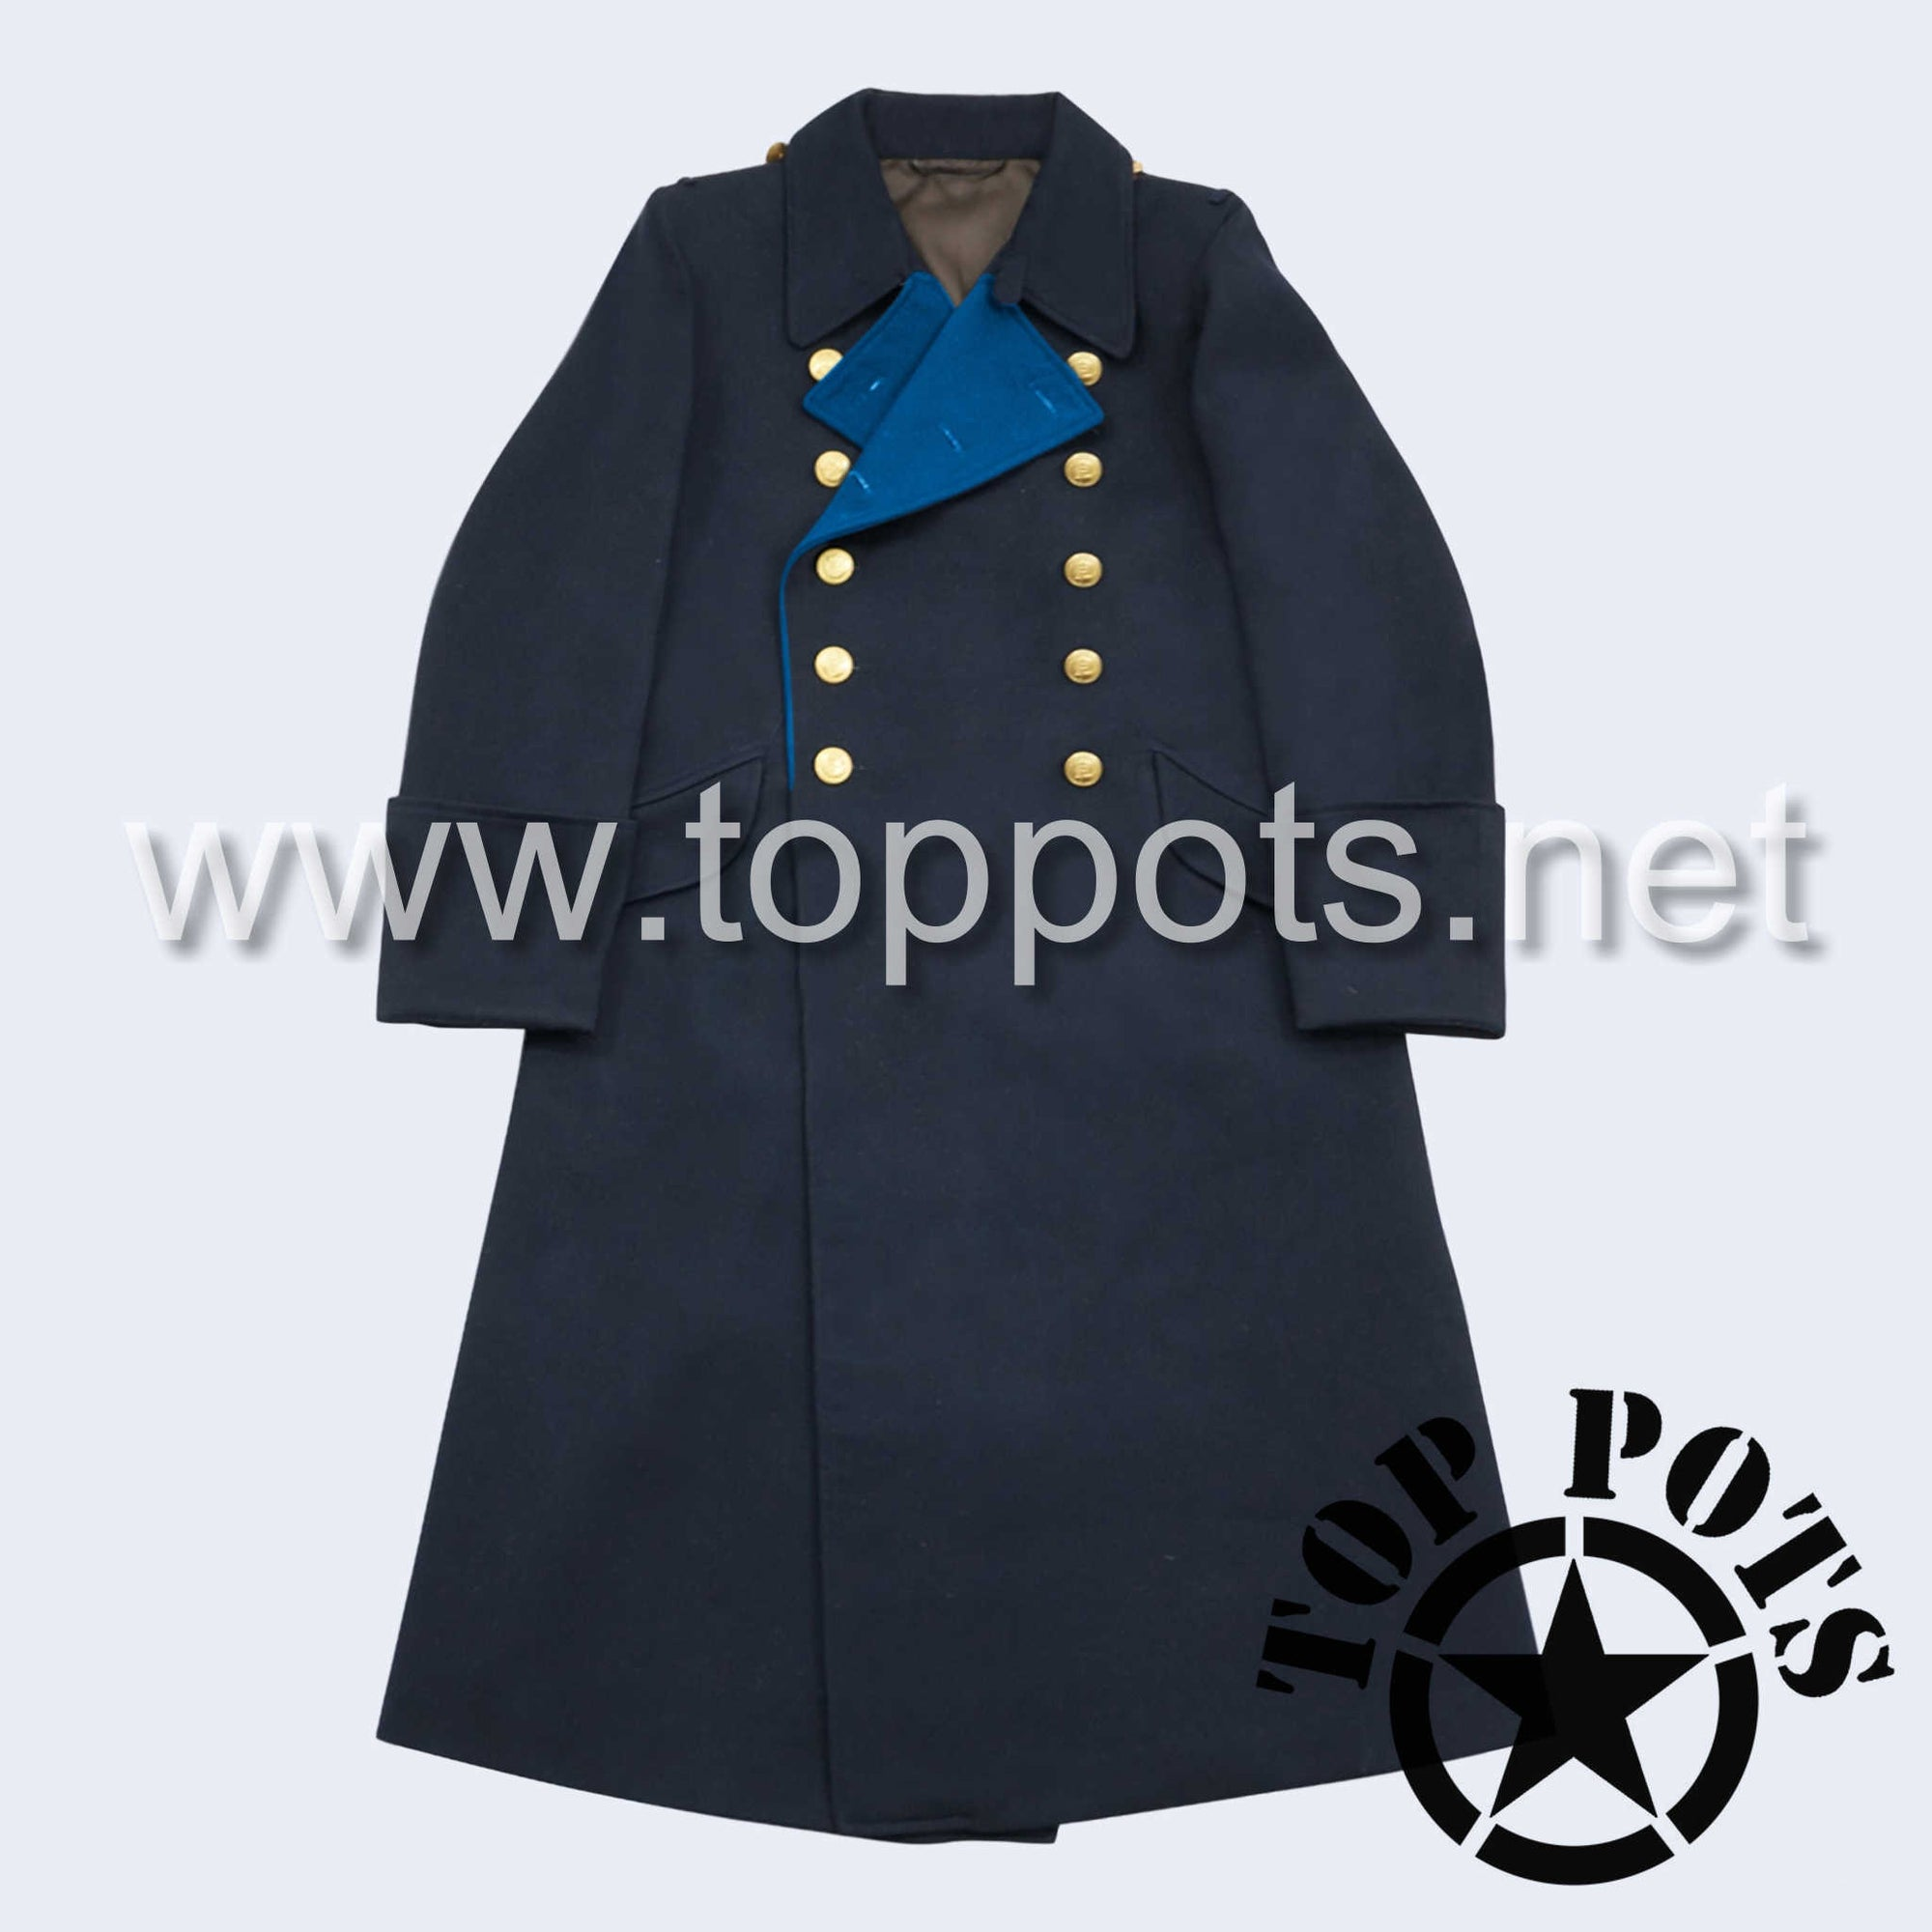 WWII German Navy Kriegsmarine Officer Uniform Overcoat Greatcoat Winter Jacket Navy Blue Wool - Admiral